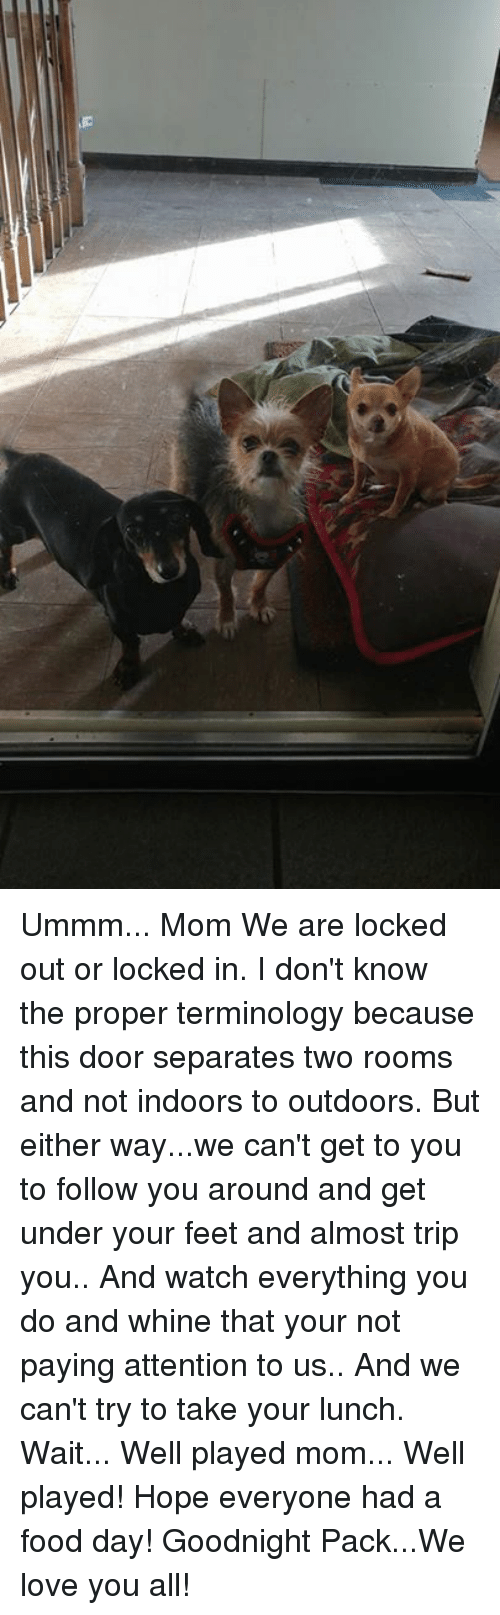 Memes, 🤖, and Feet: Ummm... Mom We are locked out or locked in. I don't know the proper terminology because this door separates two rooms and not indoors to outdoors. But either way...we can't get to you to follow you around and get under your feet and almost trip you.. And watch everything you do and whine that your not paying attention to us.. And we can't try to take your lunch.  Wait... Well played mom... Well played!  Hope everyone had a food day!  Goodnight Pack...We love you all!